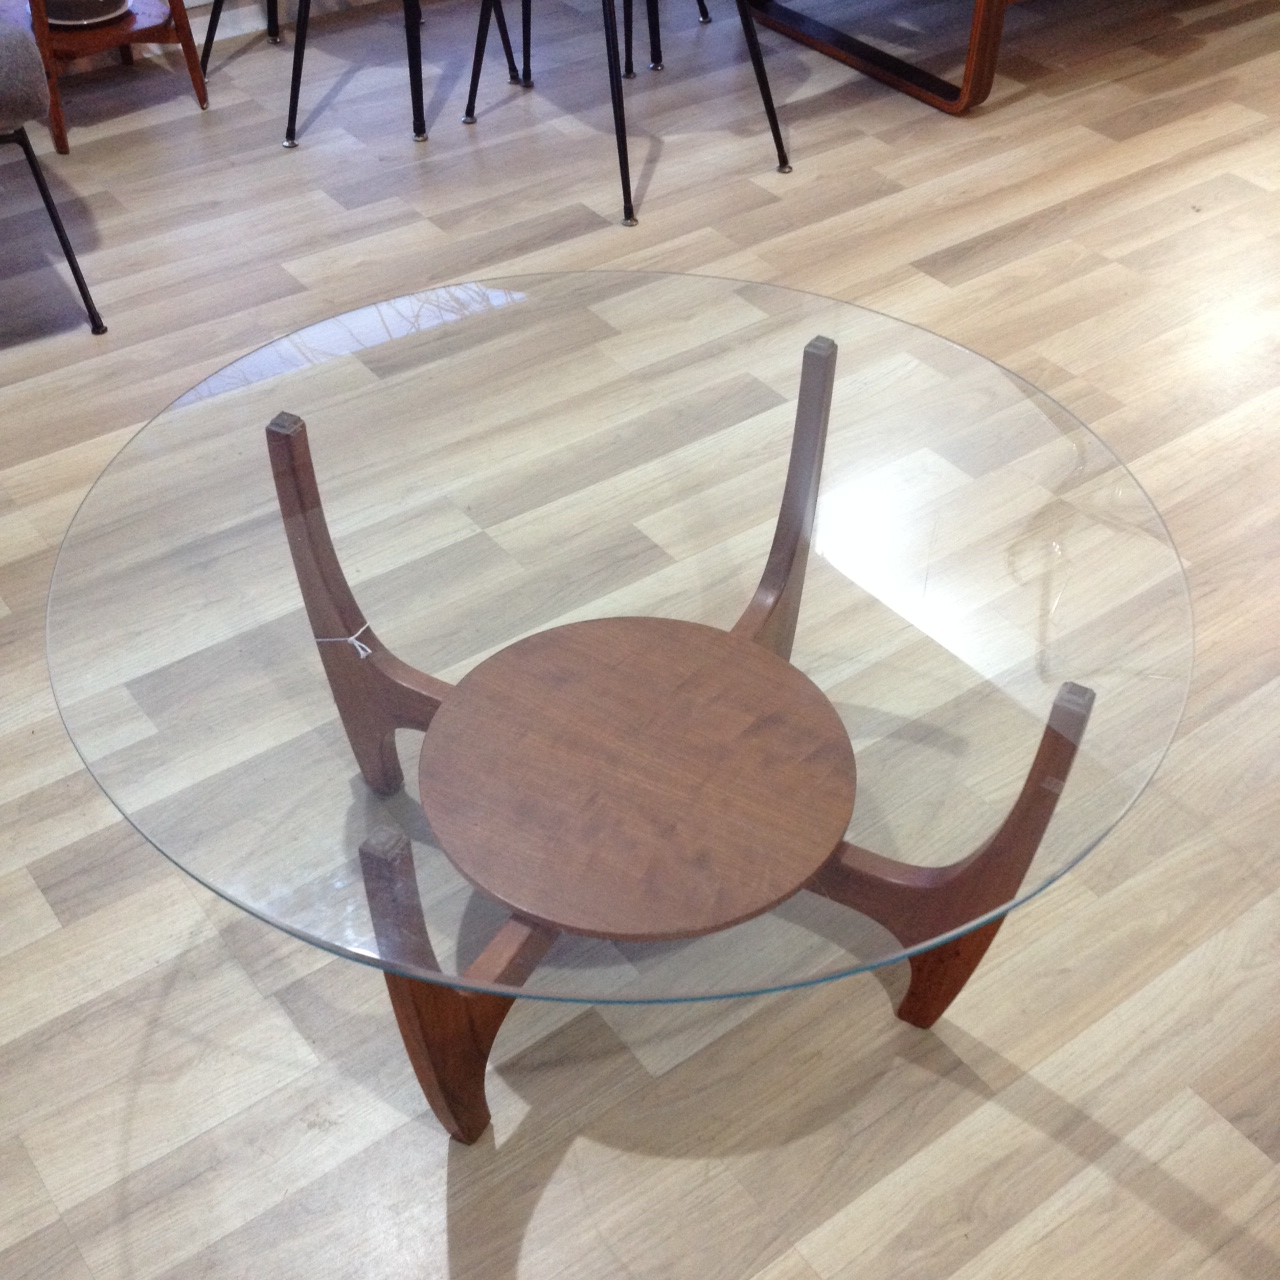 TEAK COFFEE TABLE - SOLD - KNOW YOUR PRODUCT